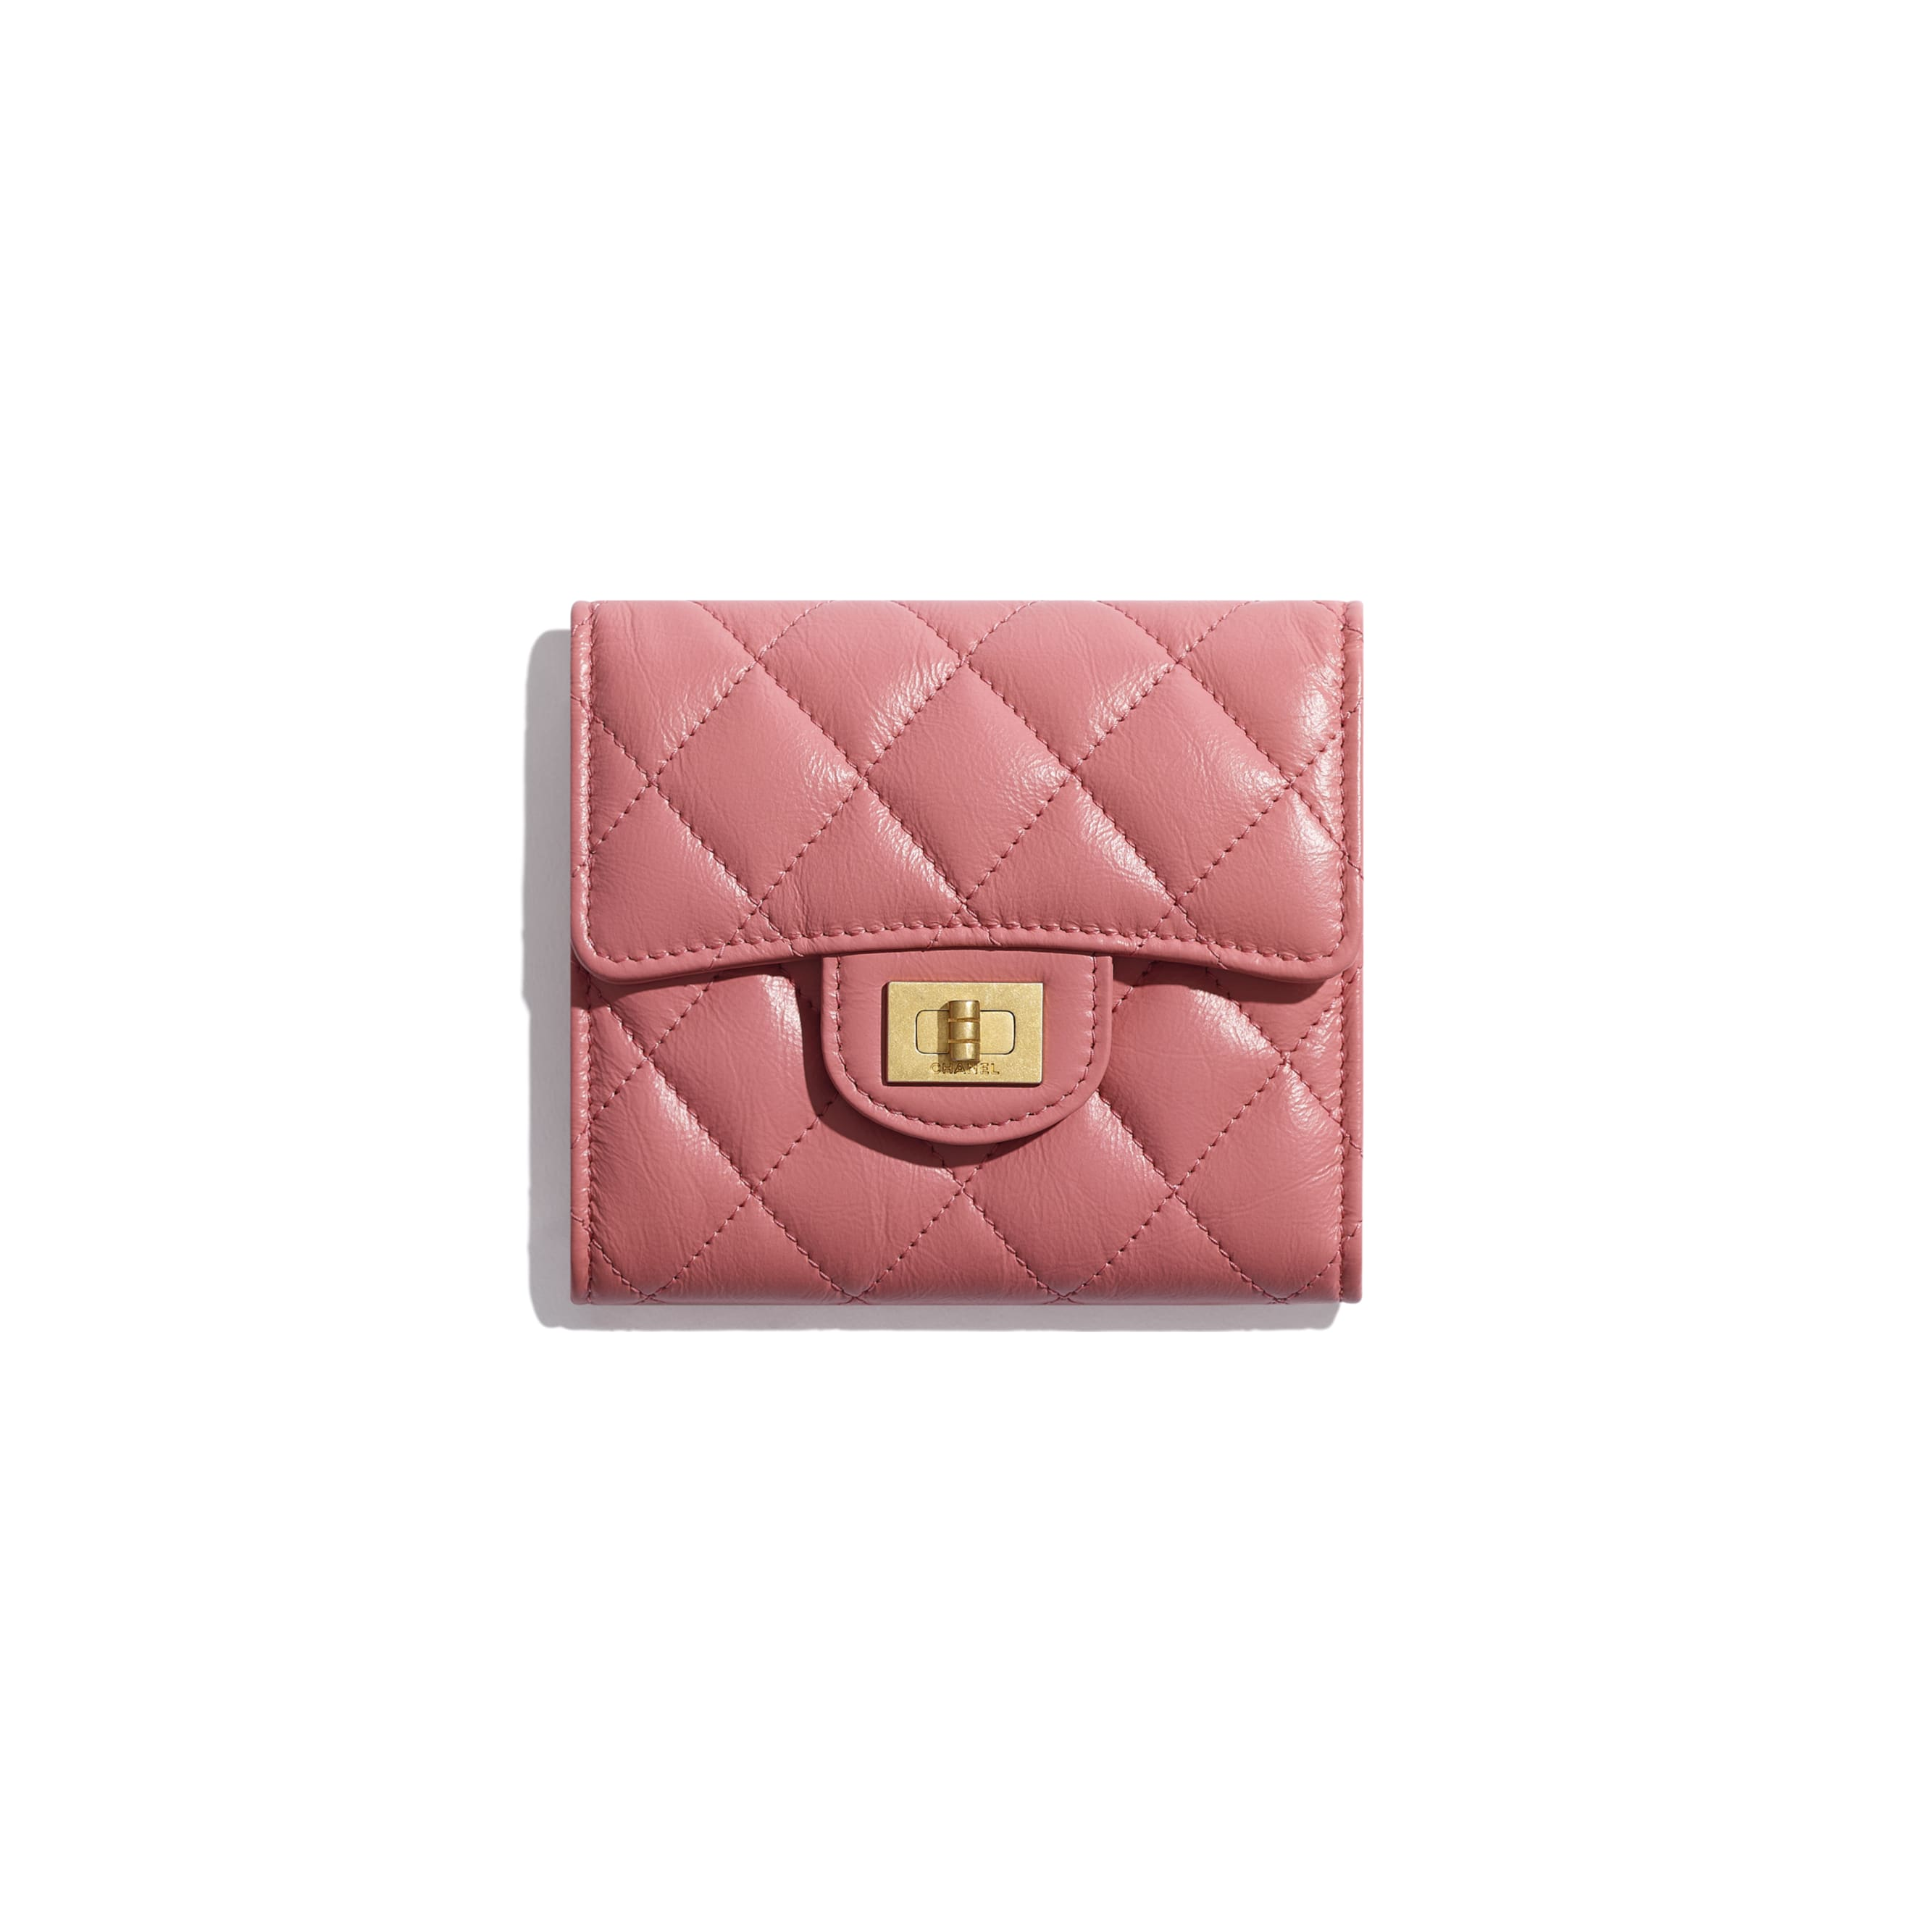 2.55 Small Flap Wallet - Pink - Aged Calfskin & Gold-Tone Metal - Default view - see standard sized version